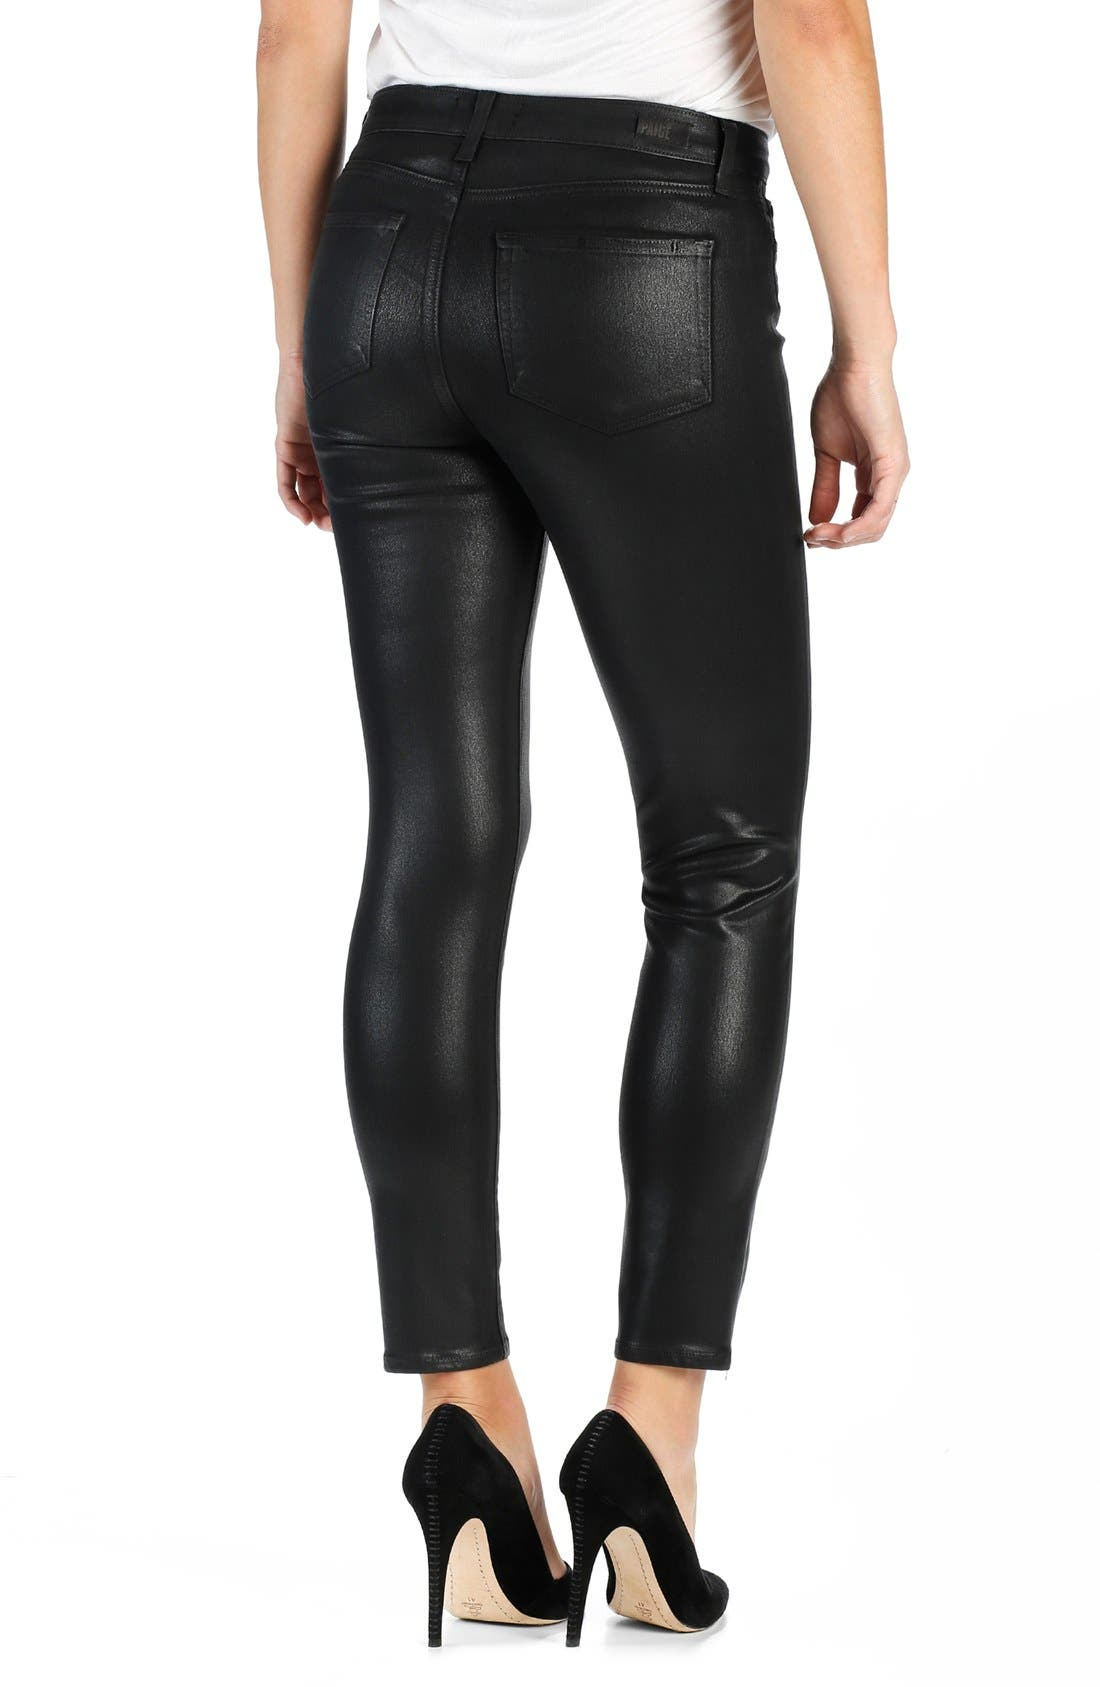 PAIGE,                             Transcend - Hoxton High Waist Ankle Skinny Jeans,                             Alternate thumbnail 8, color,                             LUXE BLACK COATED